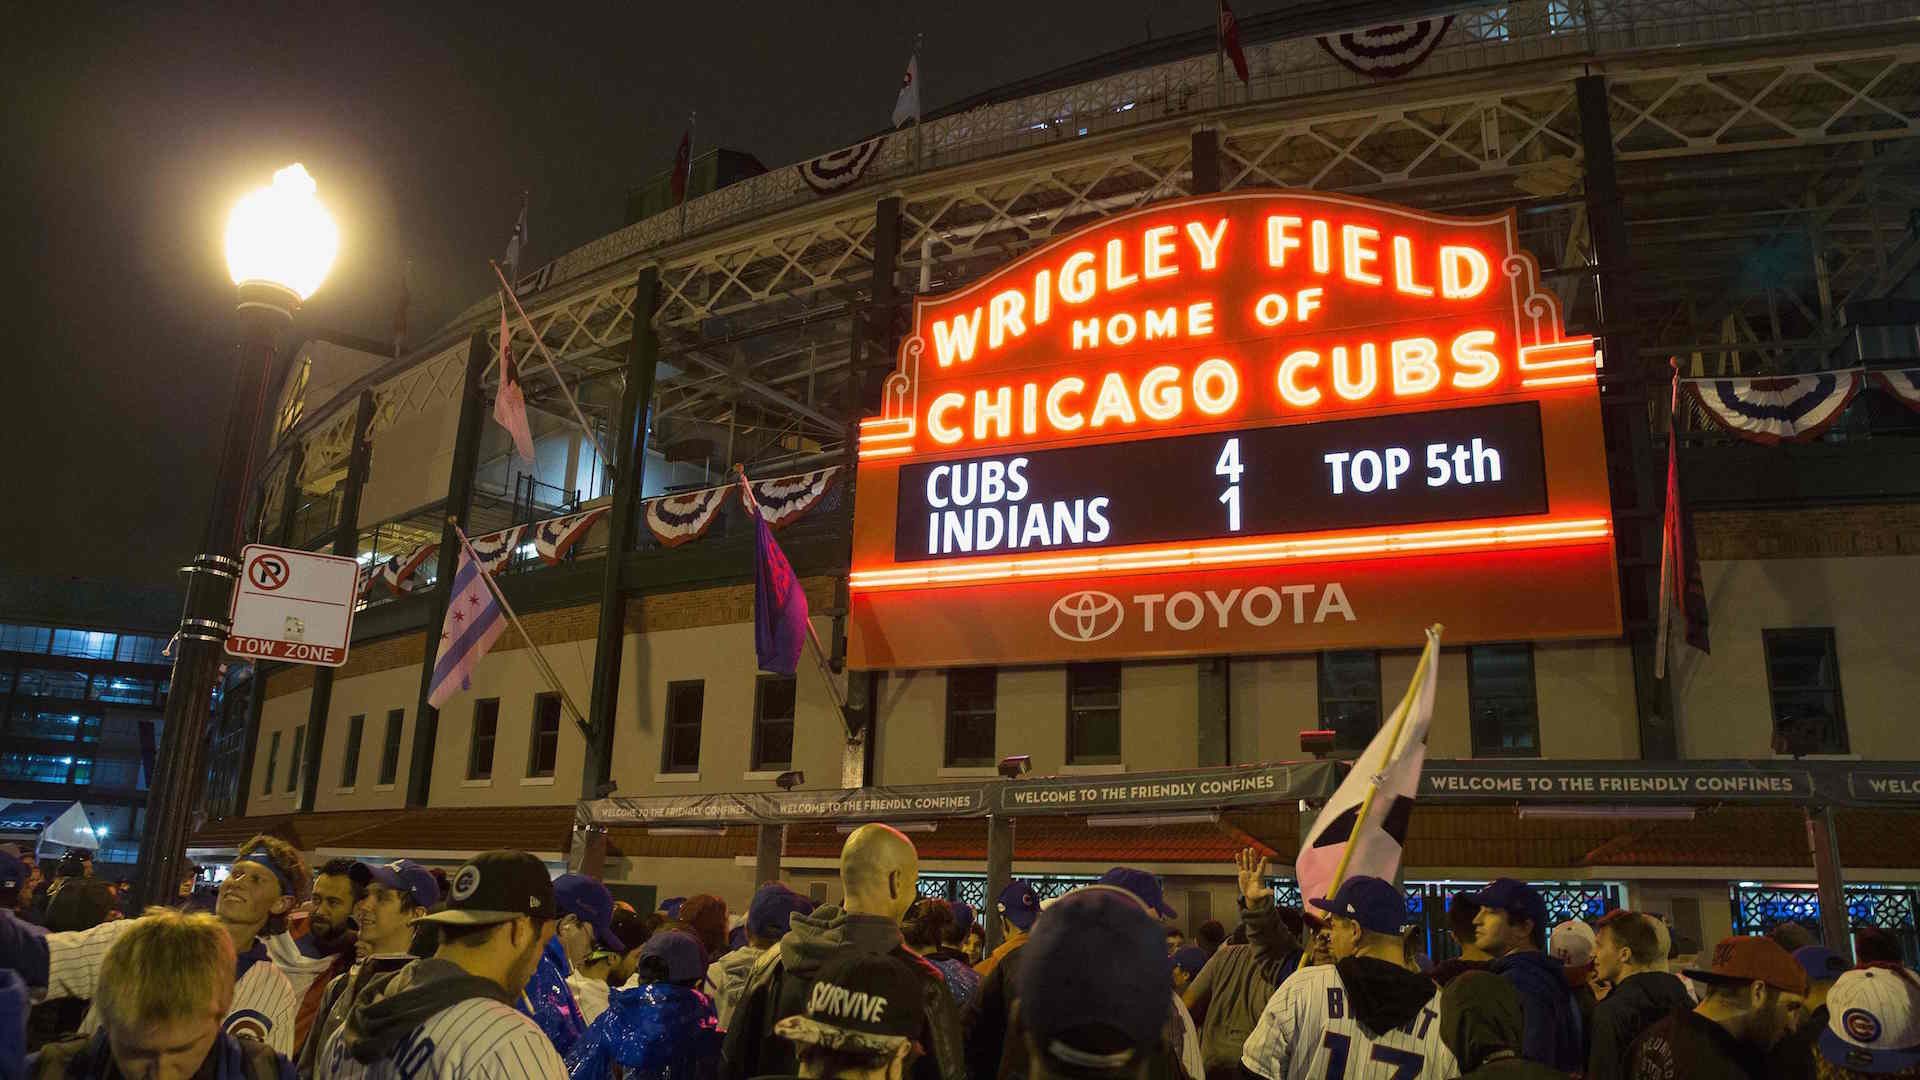 1920x1080 Cubs return to Wrigley Field as World Series champs - The Washington Post